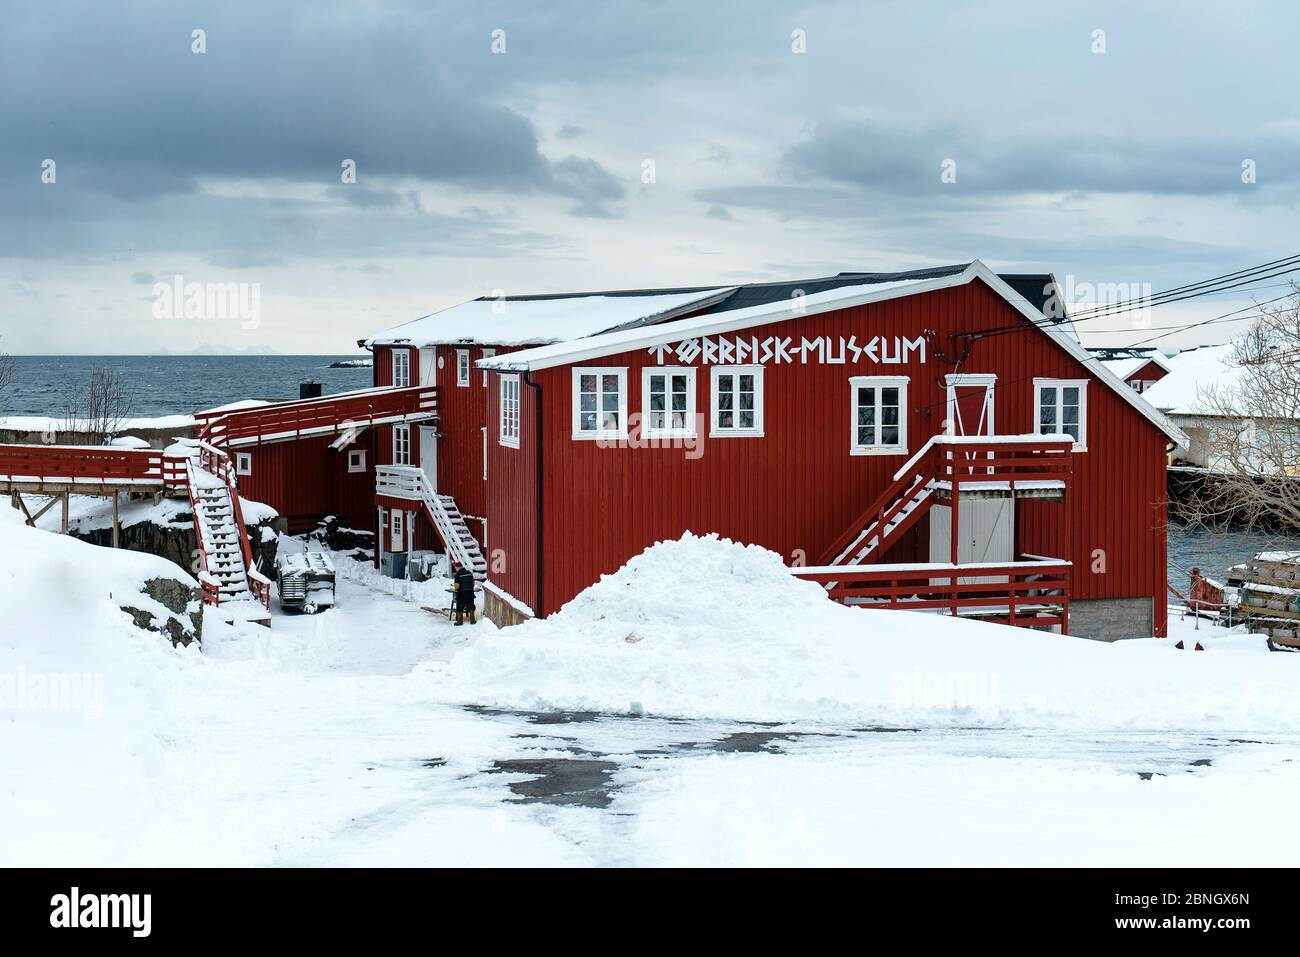 Torrfisk Museum High Resolution Stock Photography And Images Alamy